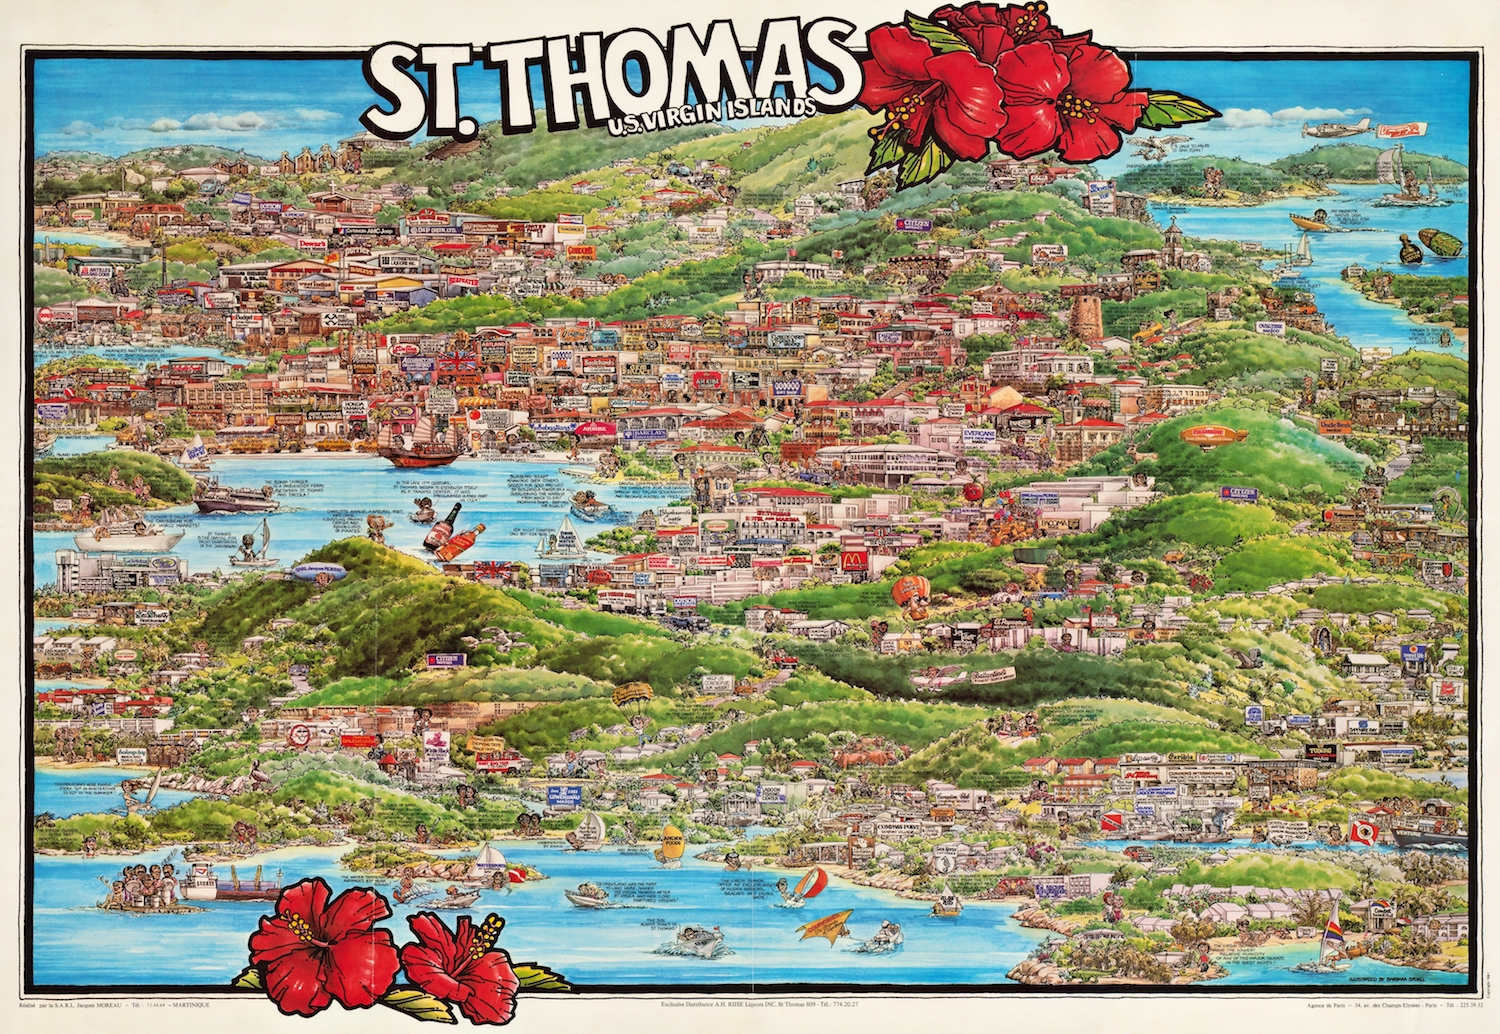 US $2.16 25% OFF|Vintage Europe Map Poster St. Thomas U.S. Virgin Islands  Classic Canvas Paintings Vintage Wall Posters Stickers Home Decor Gift-in  ...